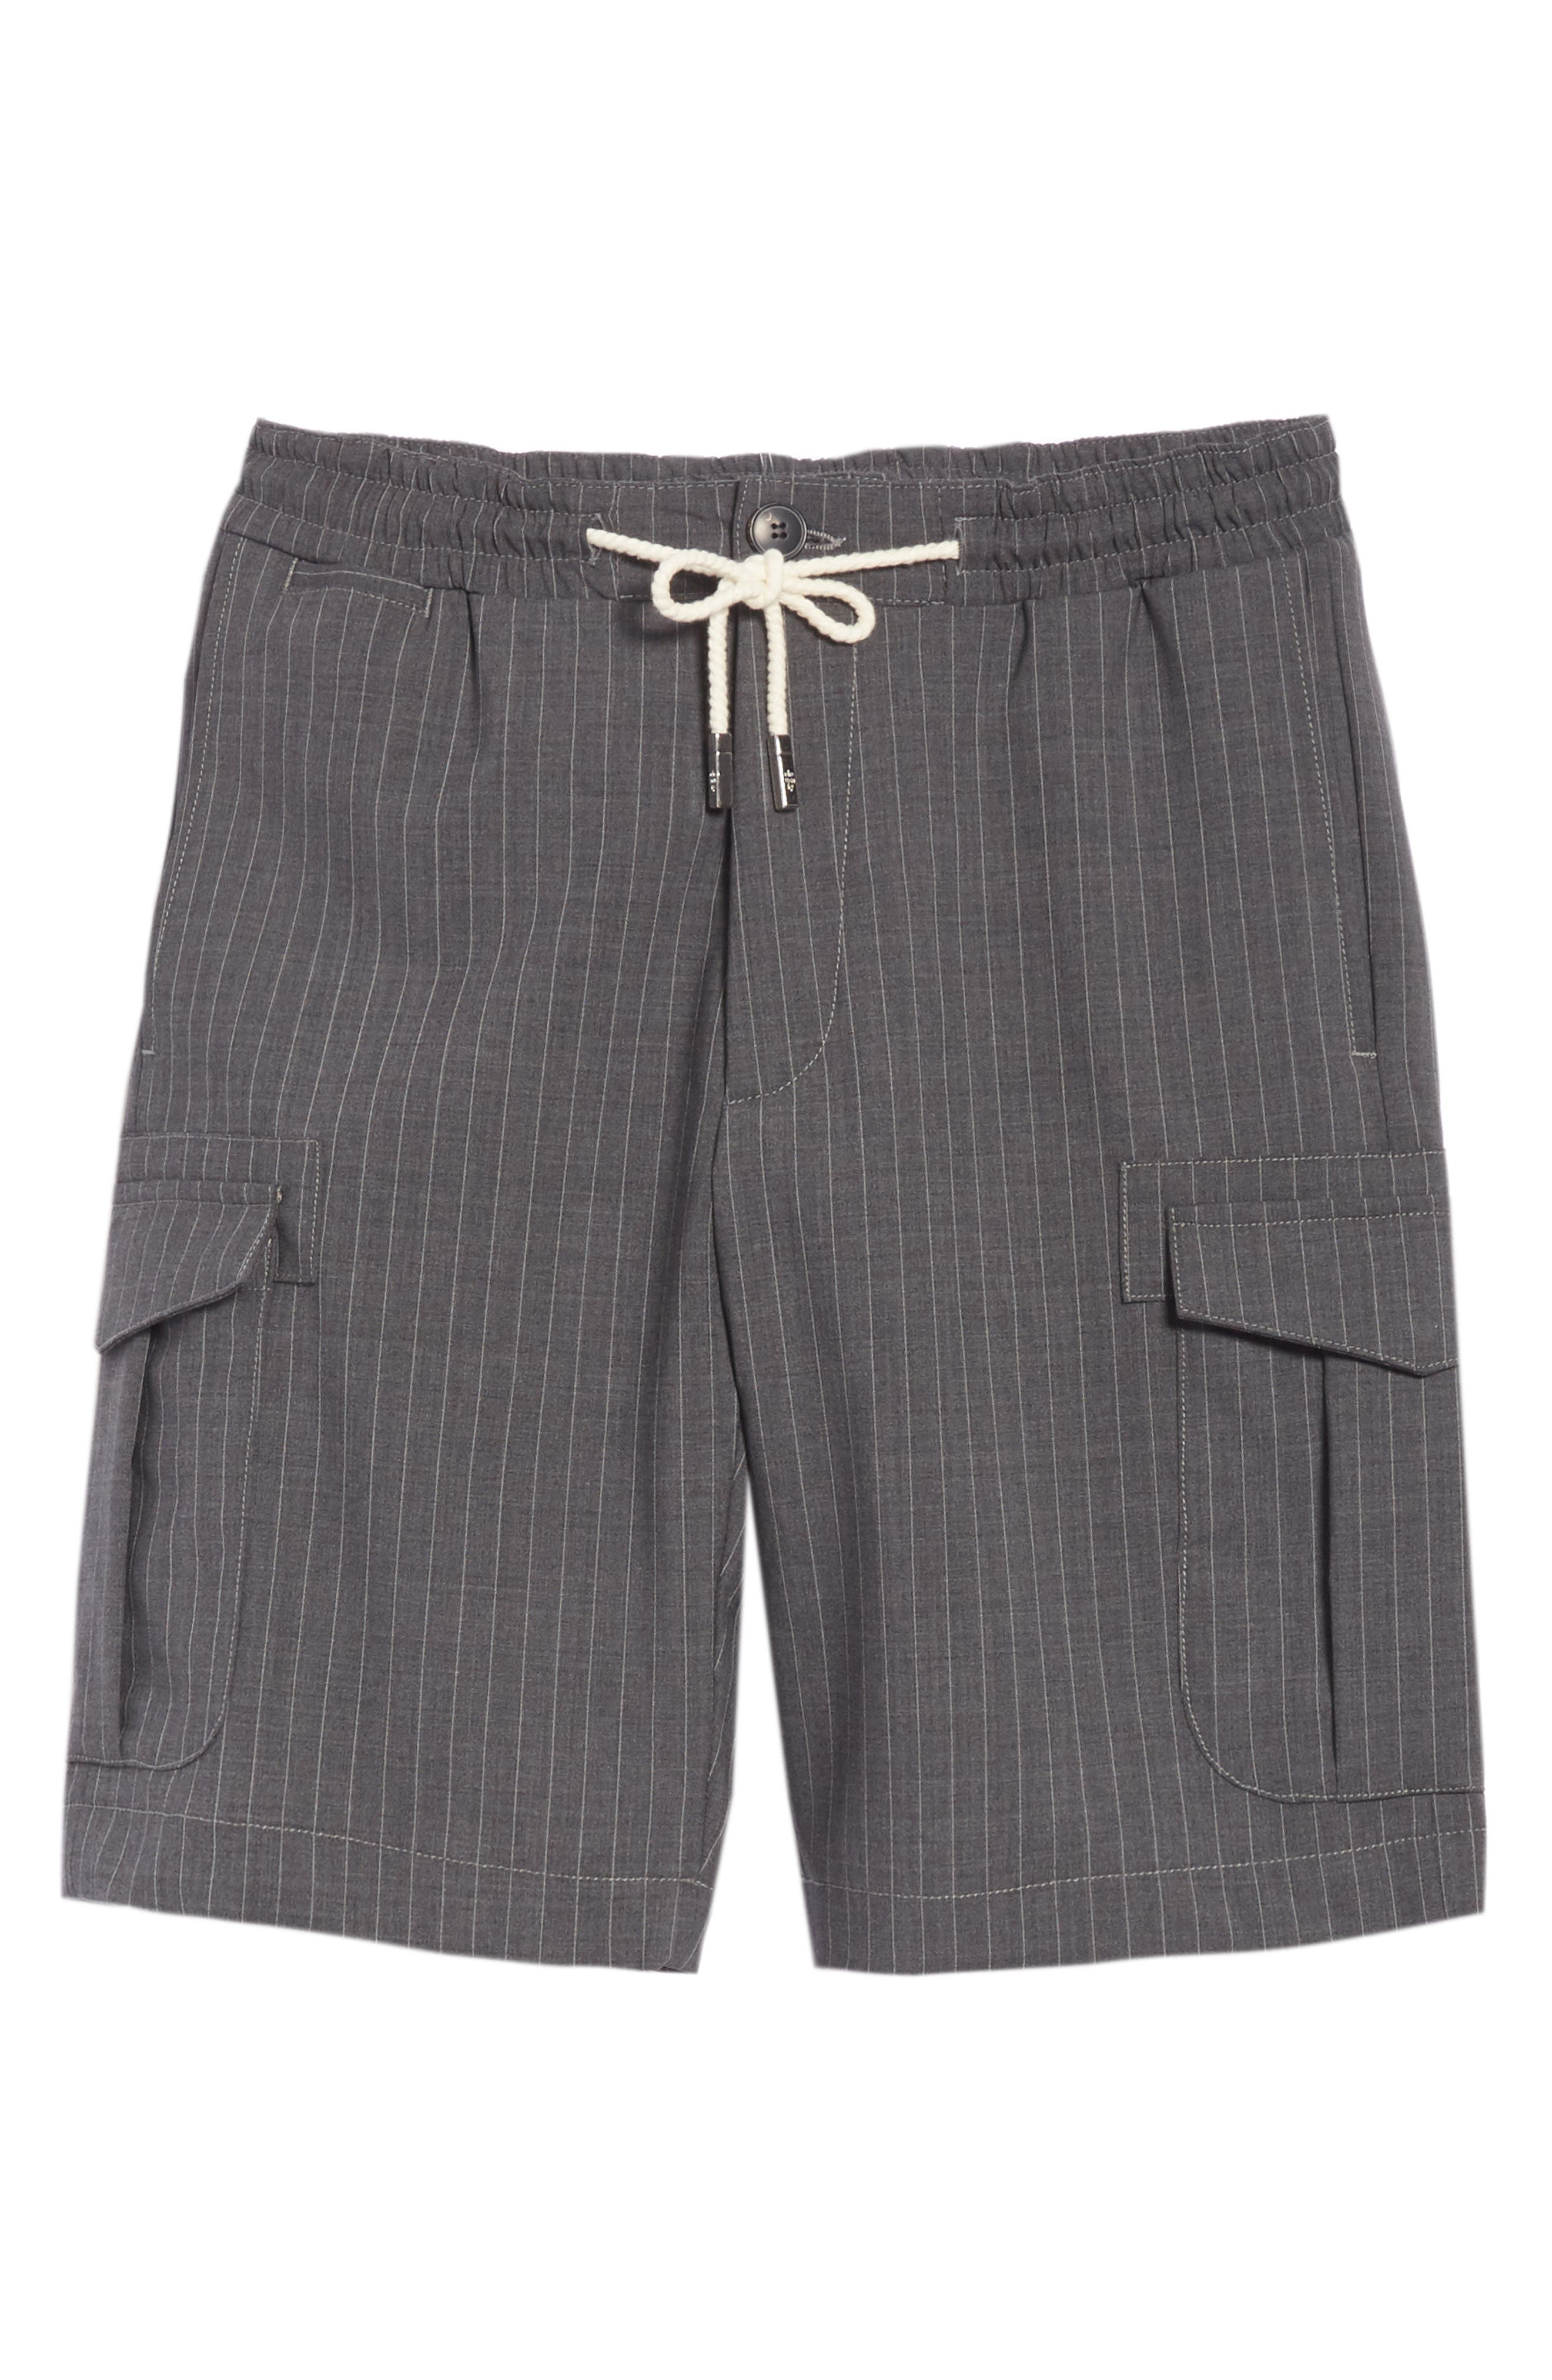 Stretch Wool Cargo Shorts,                             Alternate thumbnail 6, color,                             Dark Grey